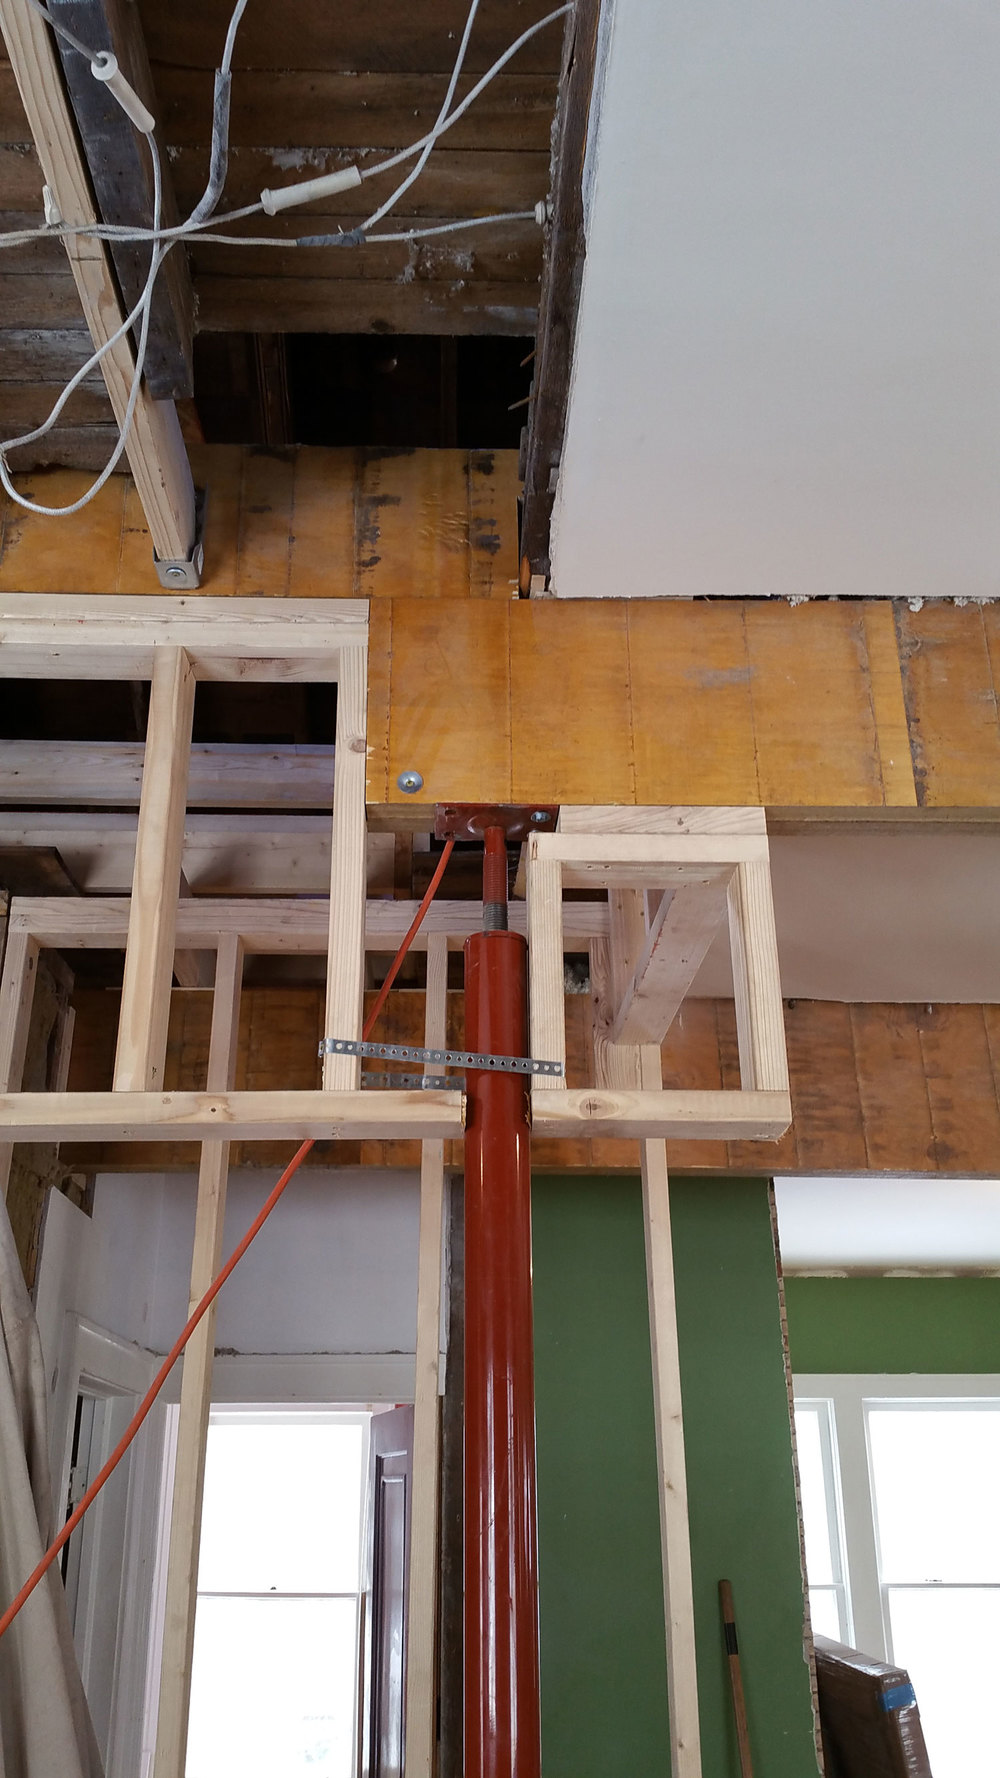 New beams and column